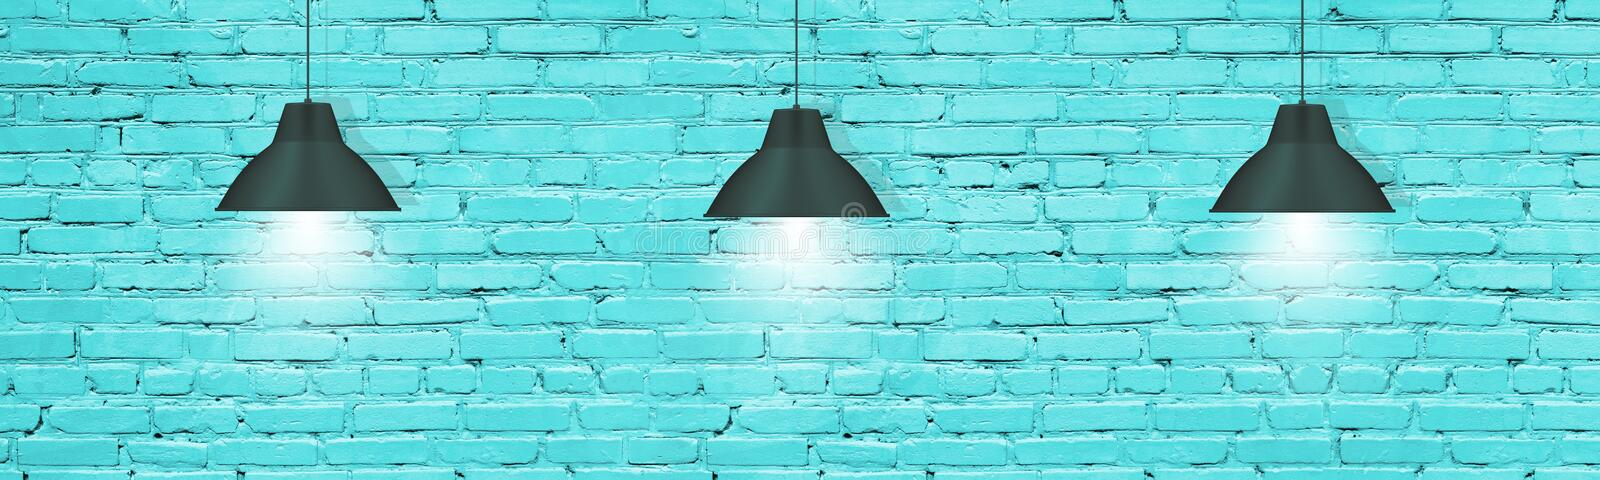 Pendant lamps against turquoise painted brick wall. Modern industrial interior background. Hanging pendant lamps against turquoise painted brick wall. Modern royalty free stock photos